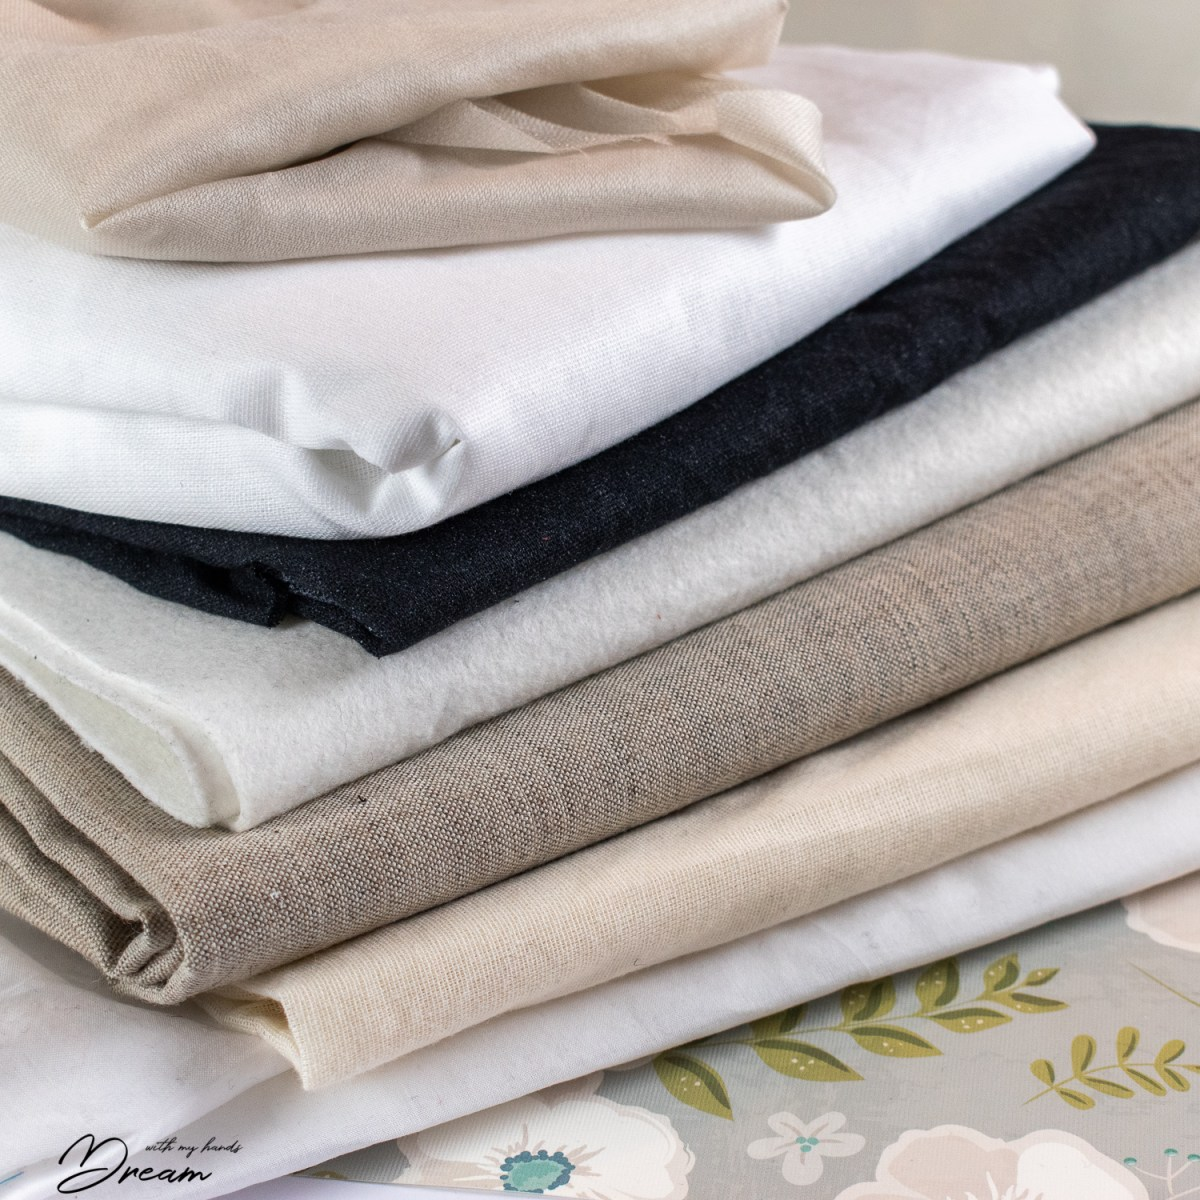 What a sewist should know about interfacing?